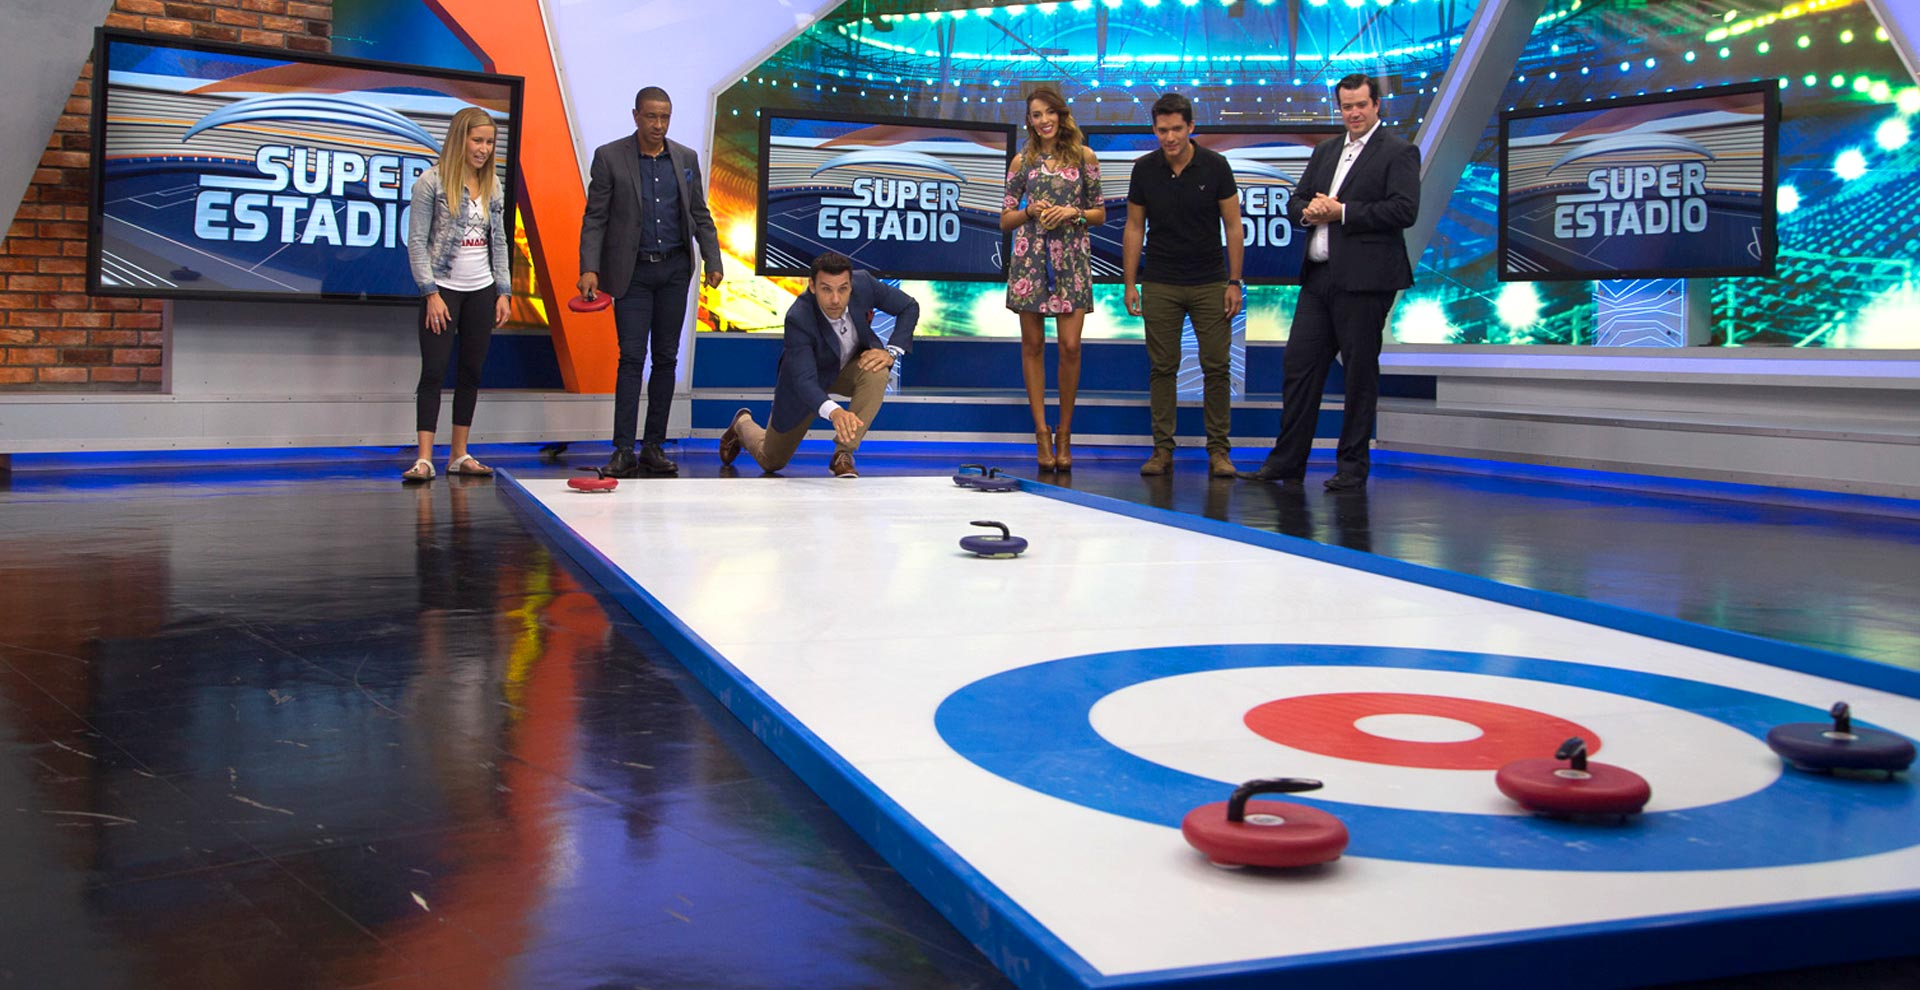 portable curling rink on the news